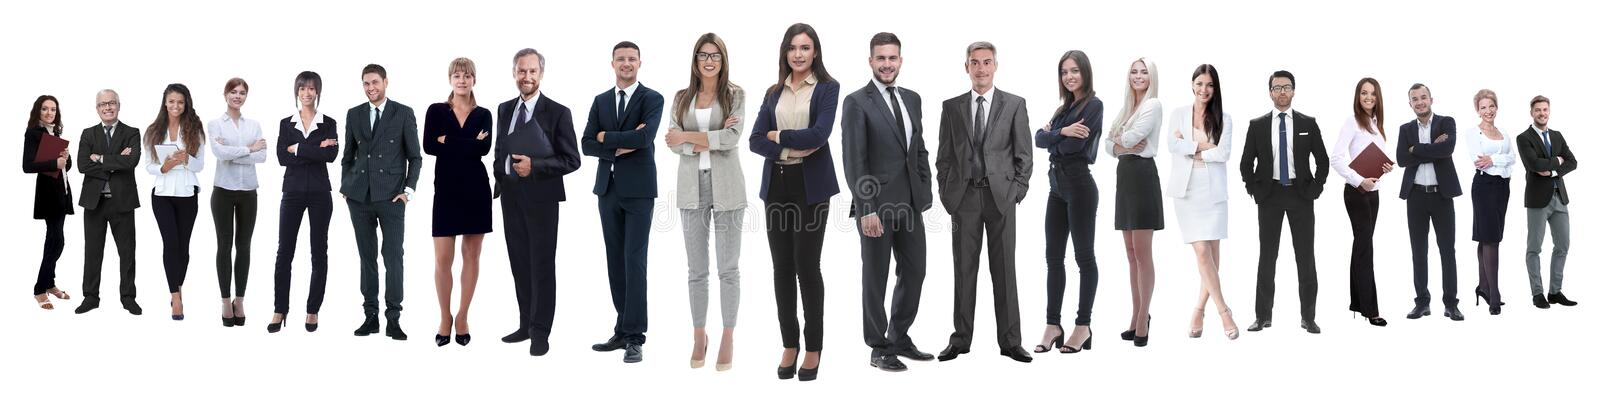 Panoramic photo of a professional numerous business team royalty free stock photography